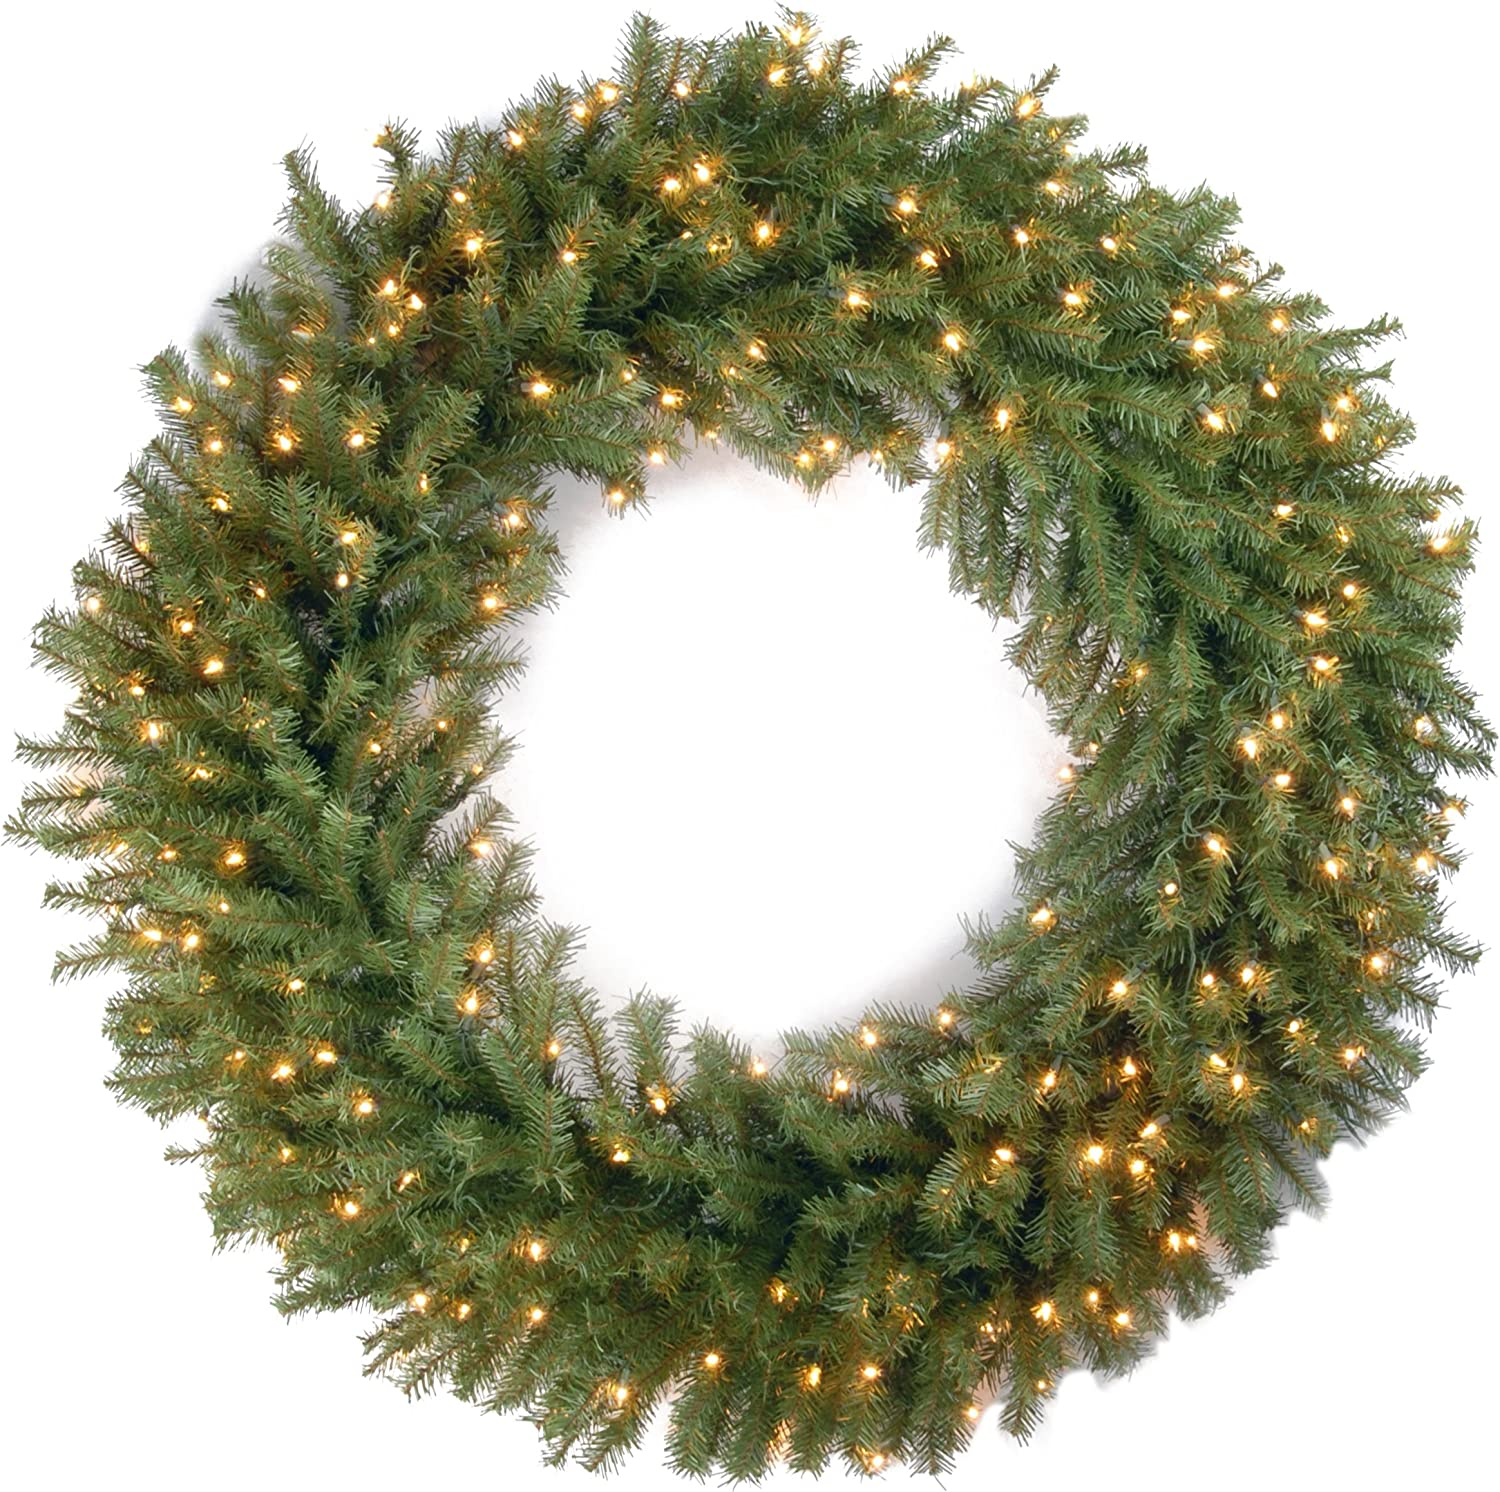 Amazon Com National Tree Company Pre Lit Artificial Christmas Wreath Includes Pre Strung White Lights Norwood Fir 48 Inch Home Kitchen